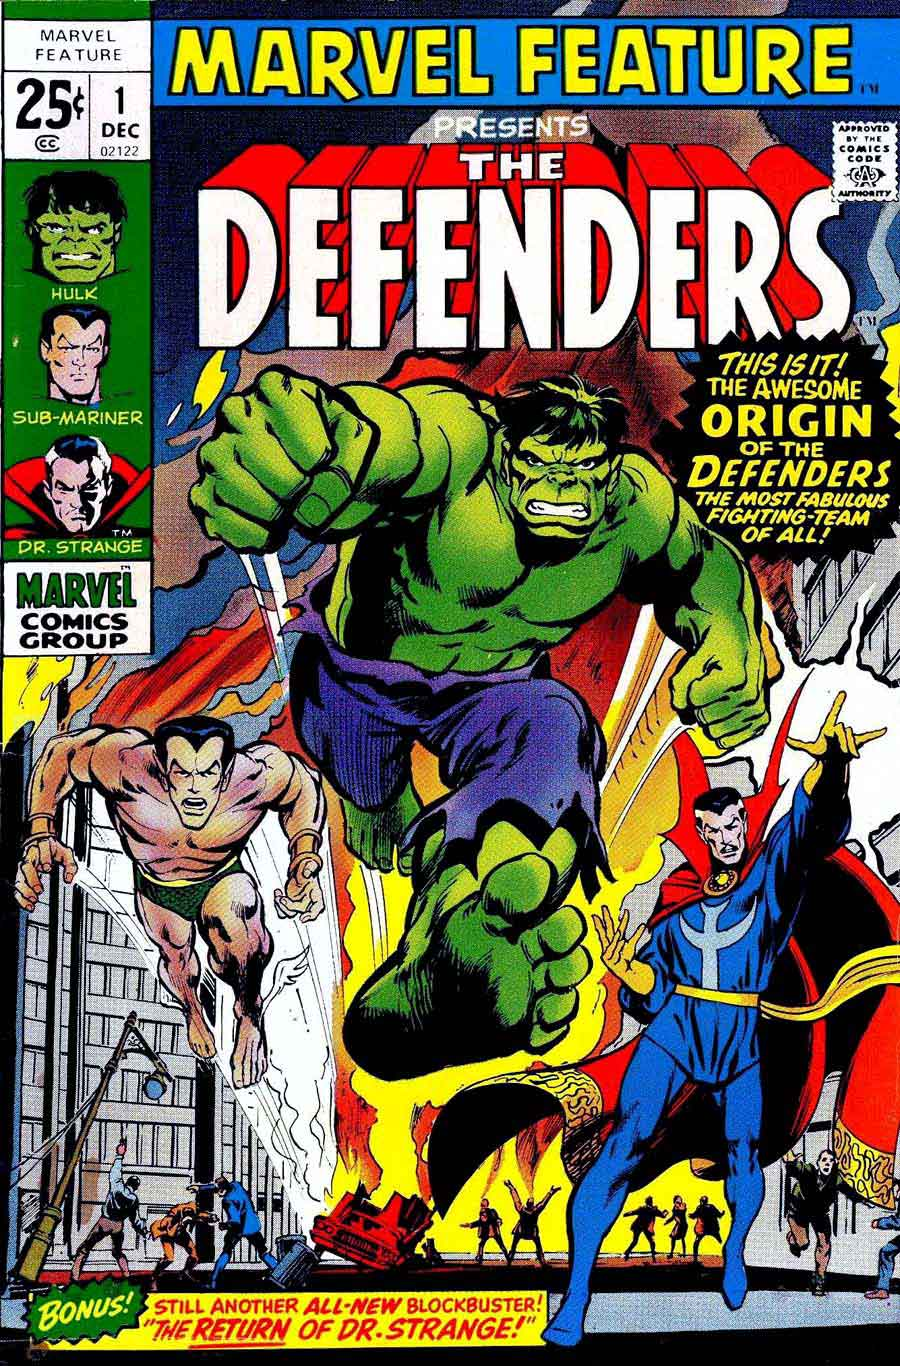 Marvel Feature v1 #1 Defenders marvel comic book cover art by Neal Adams